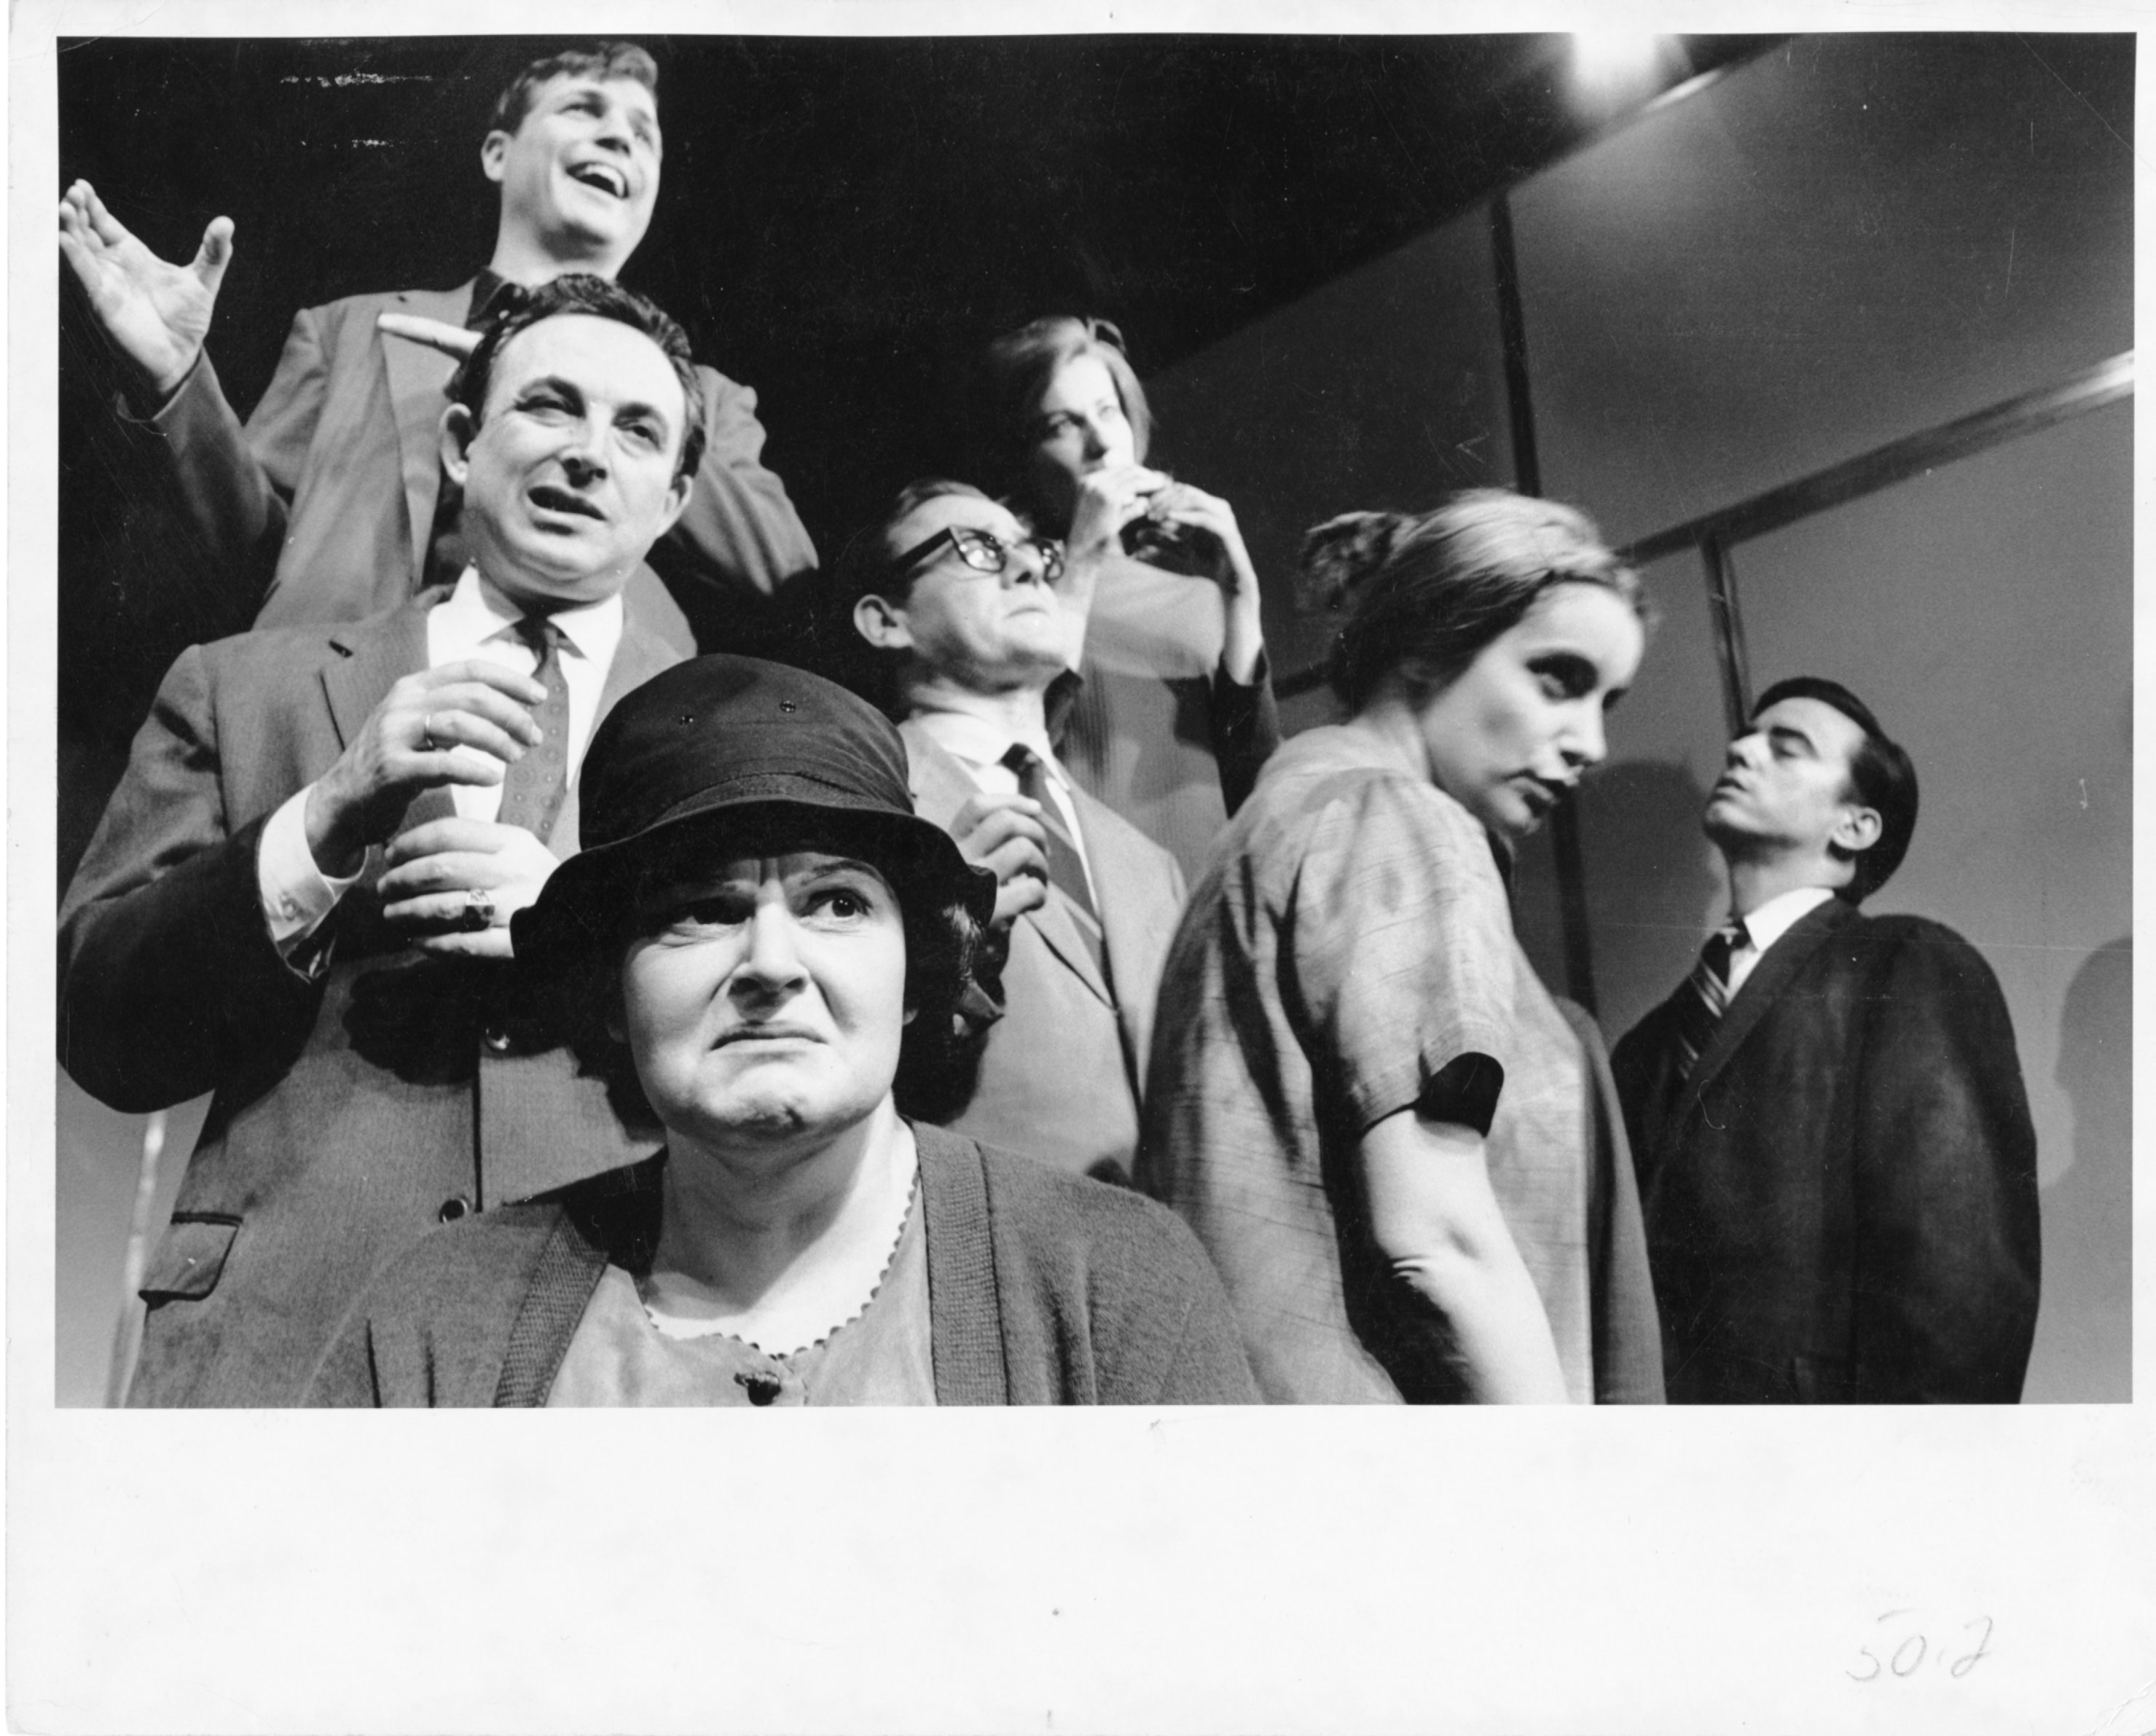 A photo of an ensemble with a frowning woman in a hat in the foreground and four men in suits and two women in the background